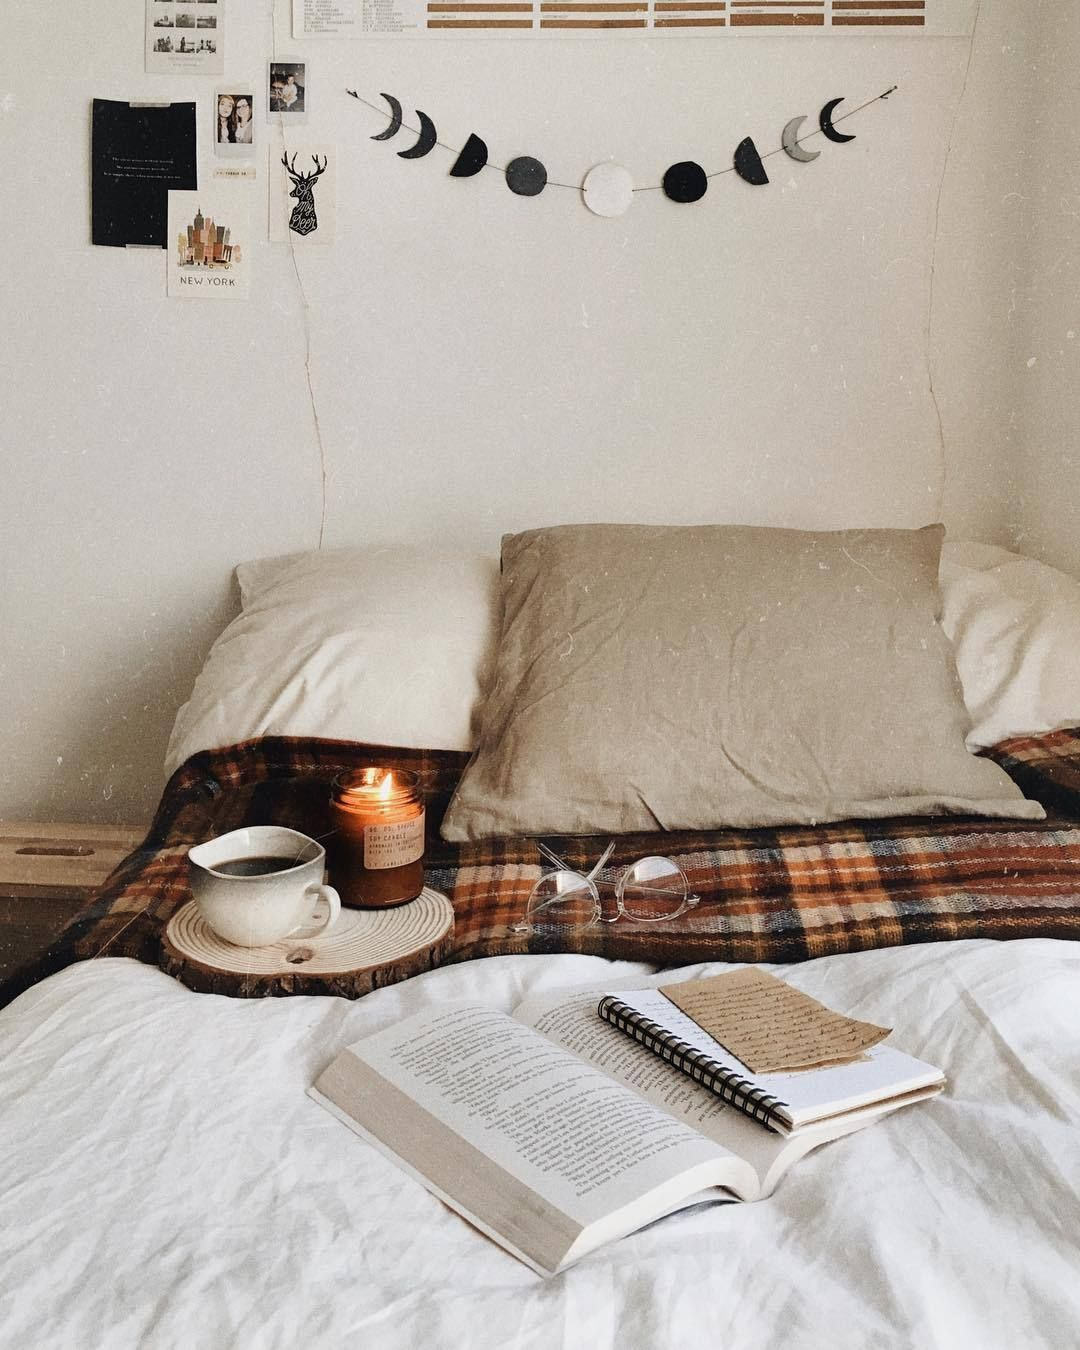 Tumblr Schlafzimmer Deko Found At Aestheticsandmood Tumblr Home Decor Bedroom